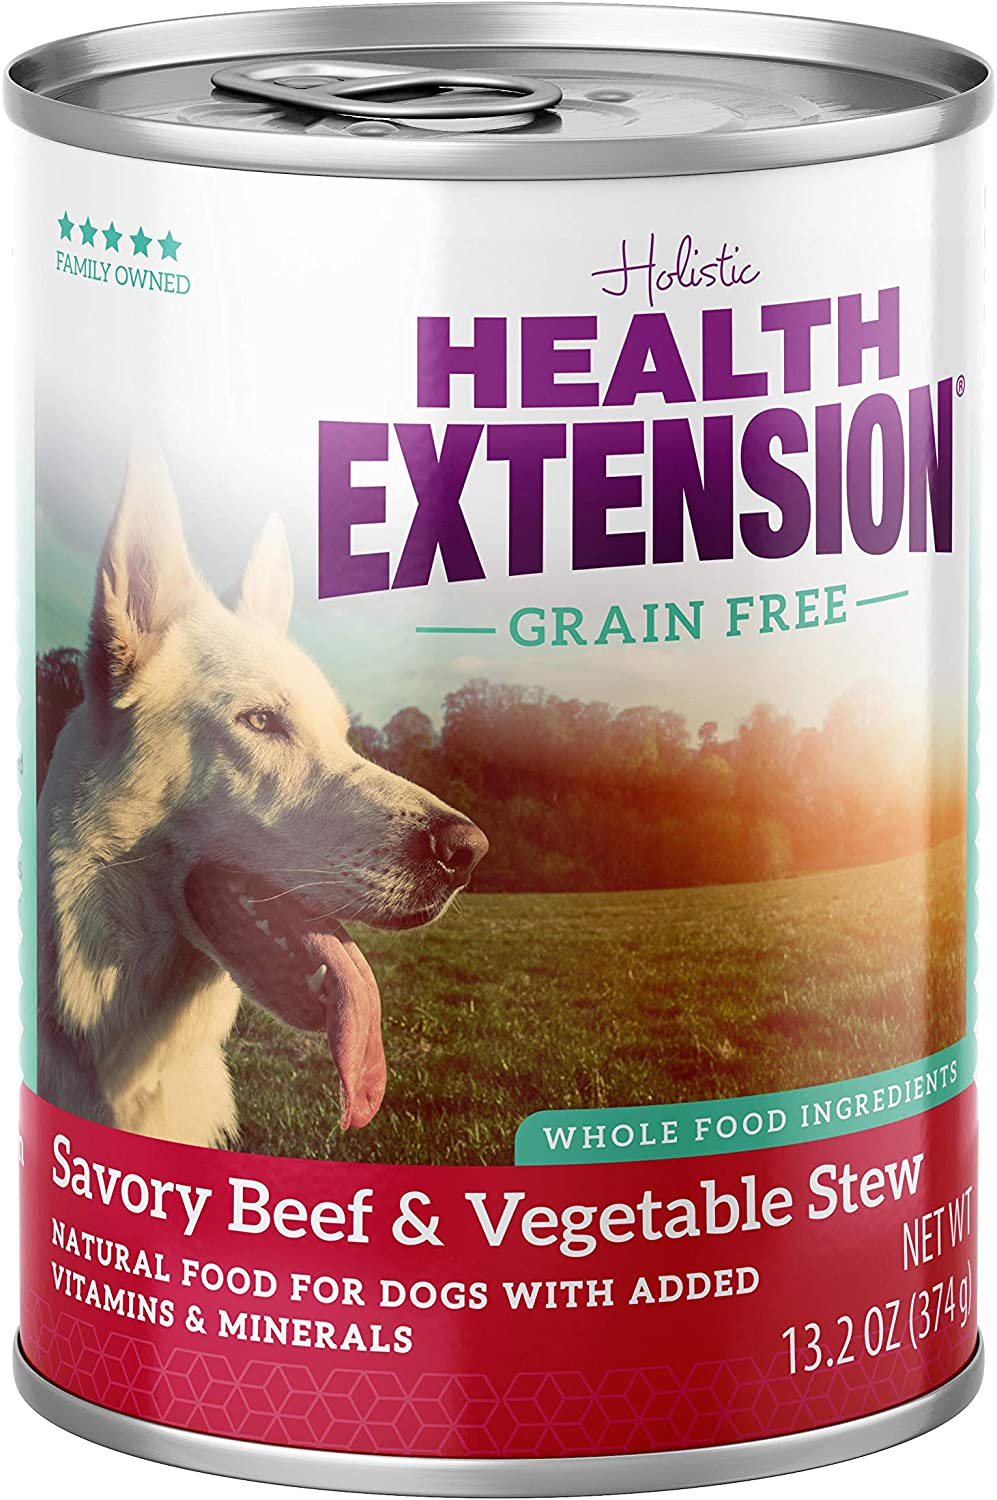 Health Extension Grain Free Savory Beef Stew Canned Wet Dog Food - (12) 13.2 Oz Cans